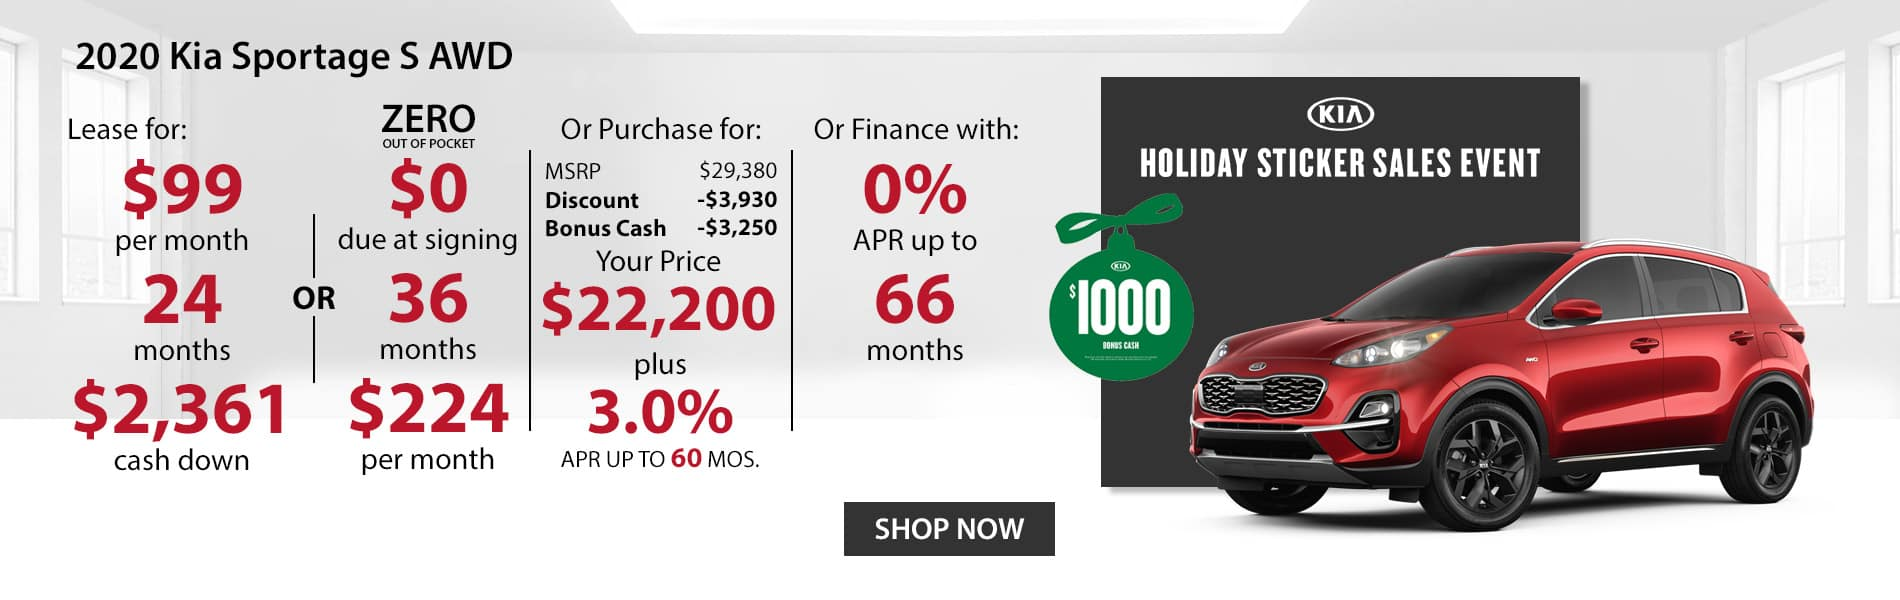 Special offer on 2020 Kia Sportage S AWD Lease for $99 or Purchase for $22,200 with 3% APR or get 0% APR for 66 months.